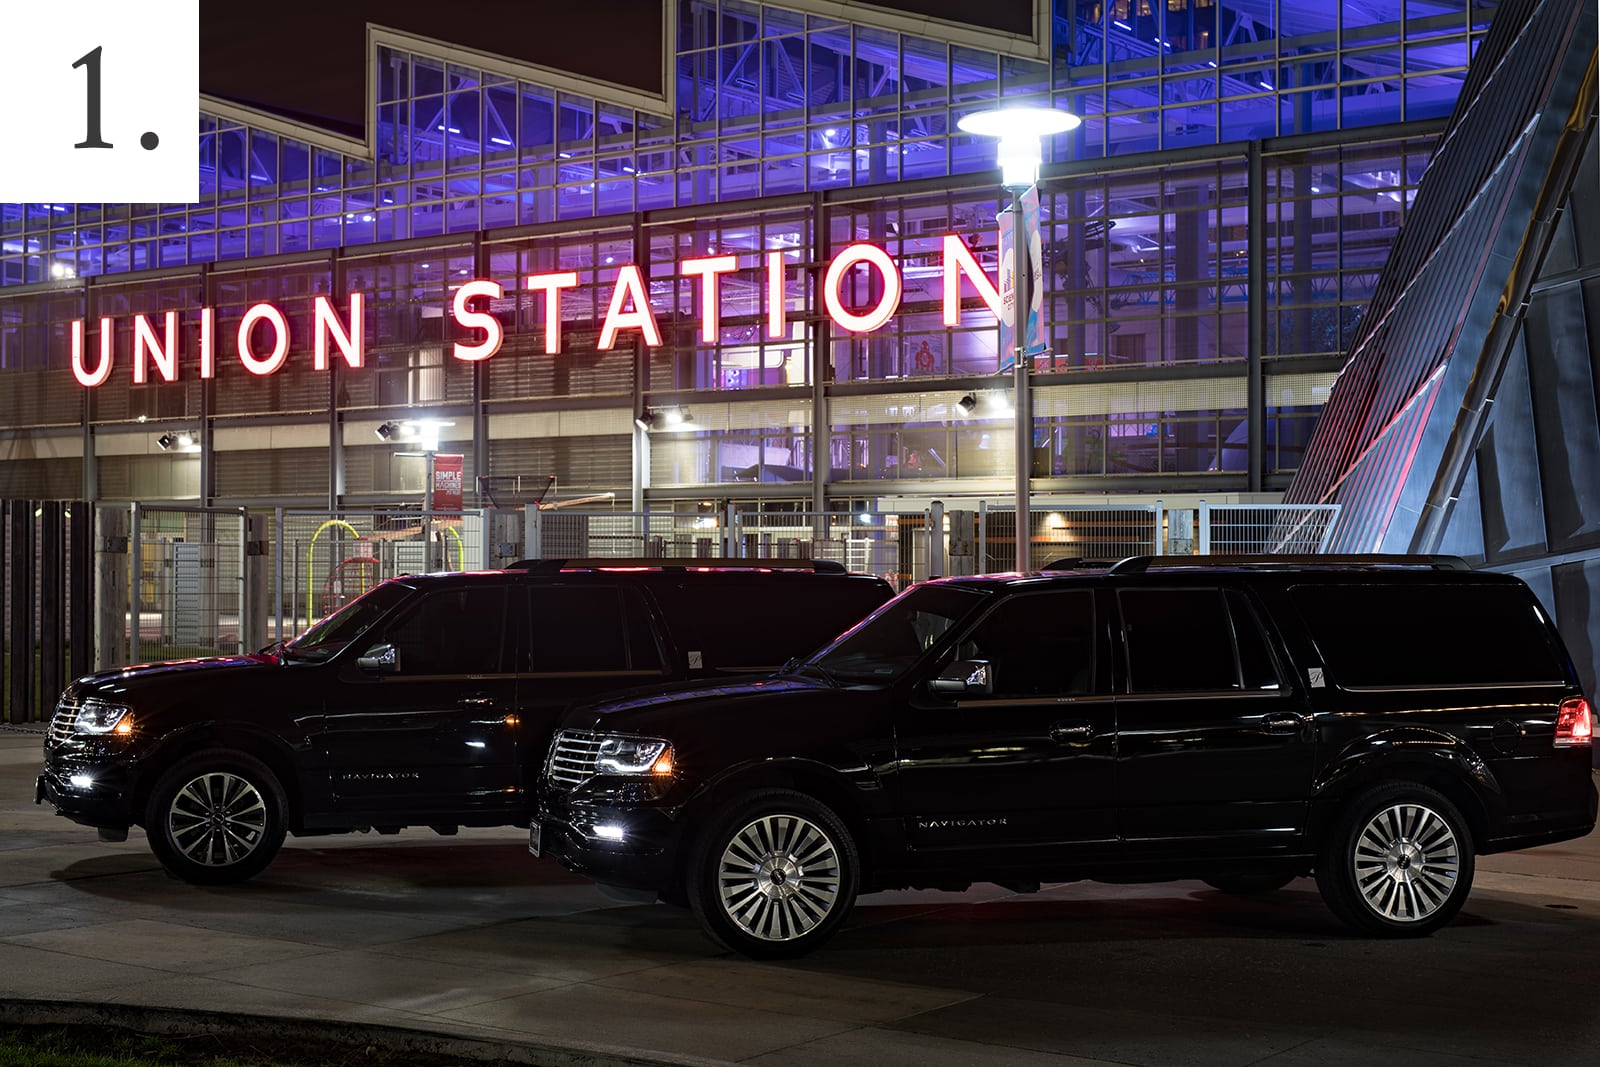 Two black Lincoln Navigator luxury SUVs in front of Union Station.